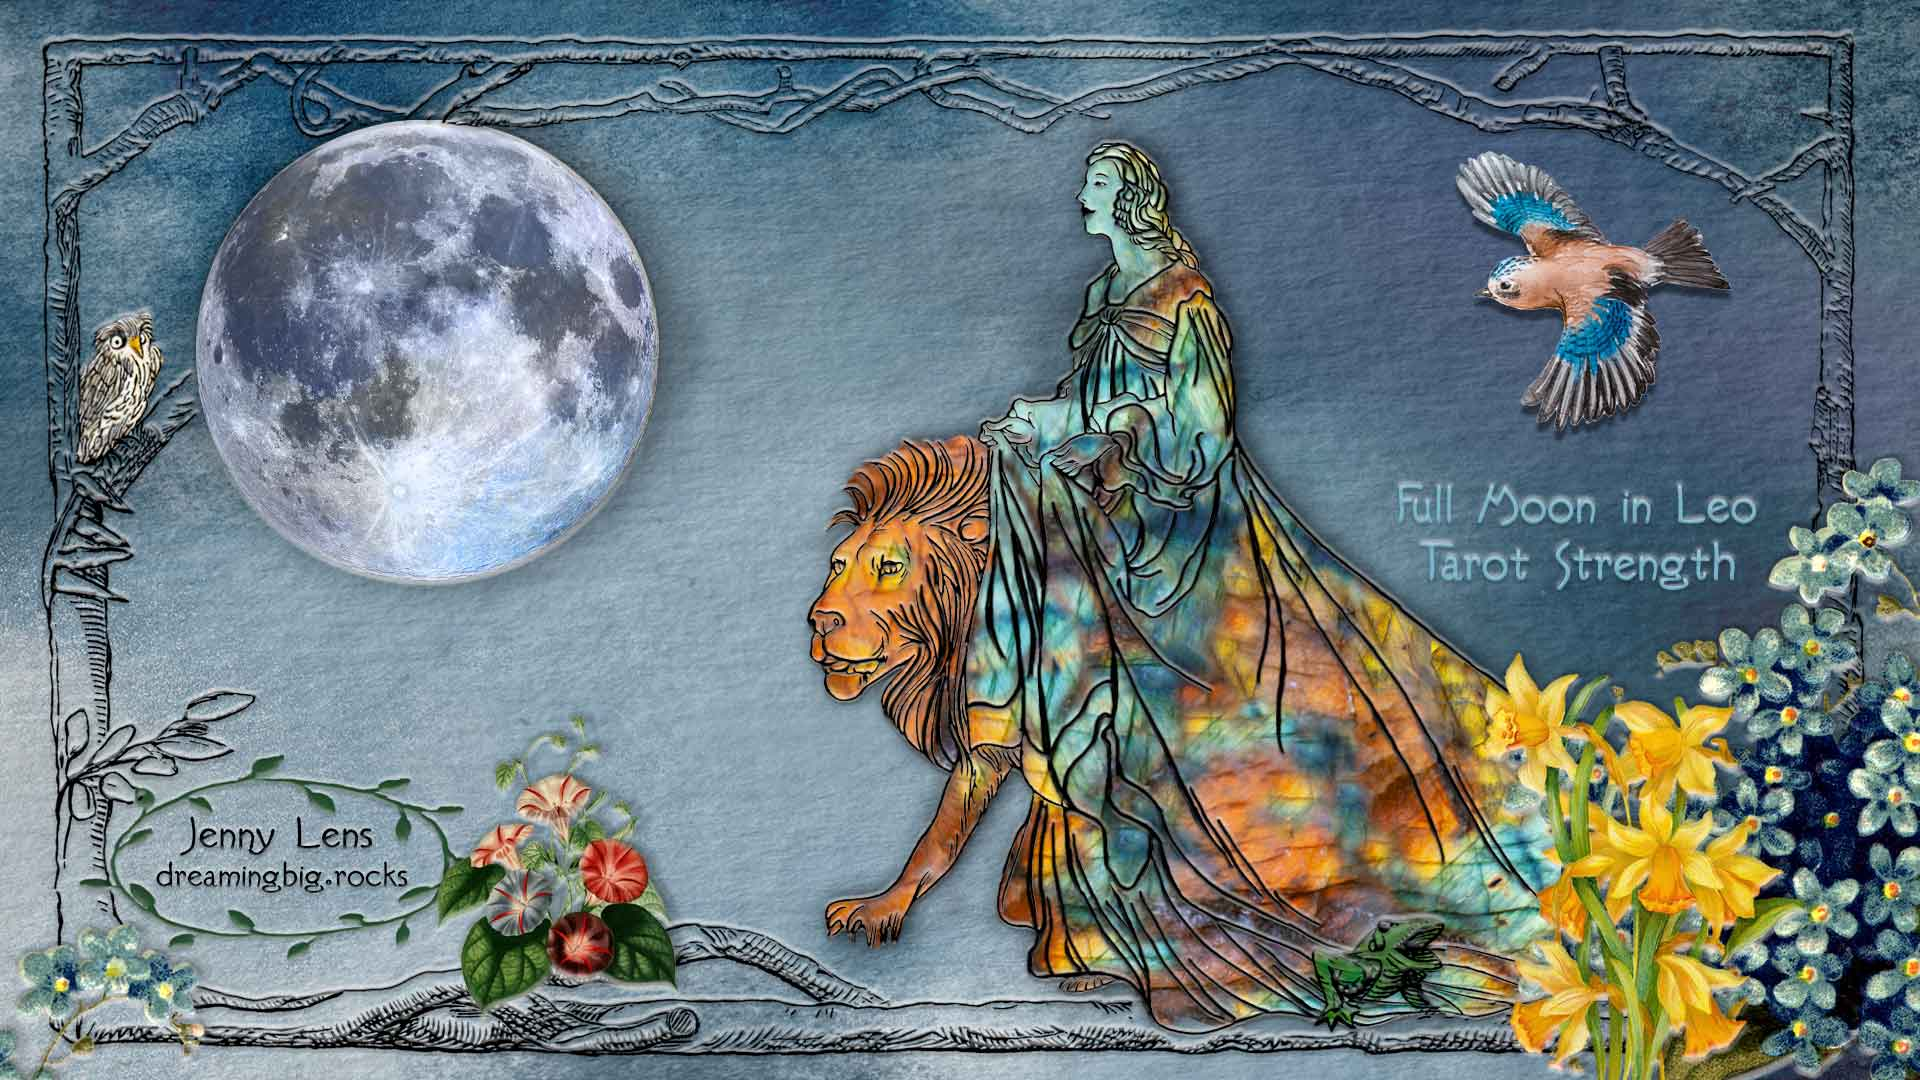 Full Moon in Leo and Tarot Strength